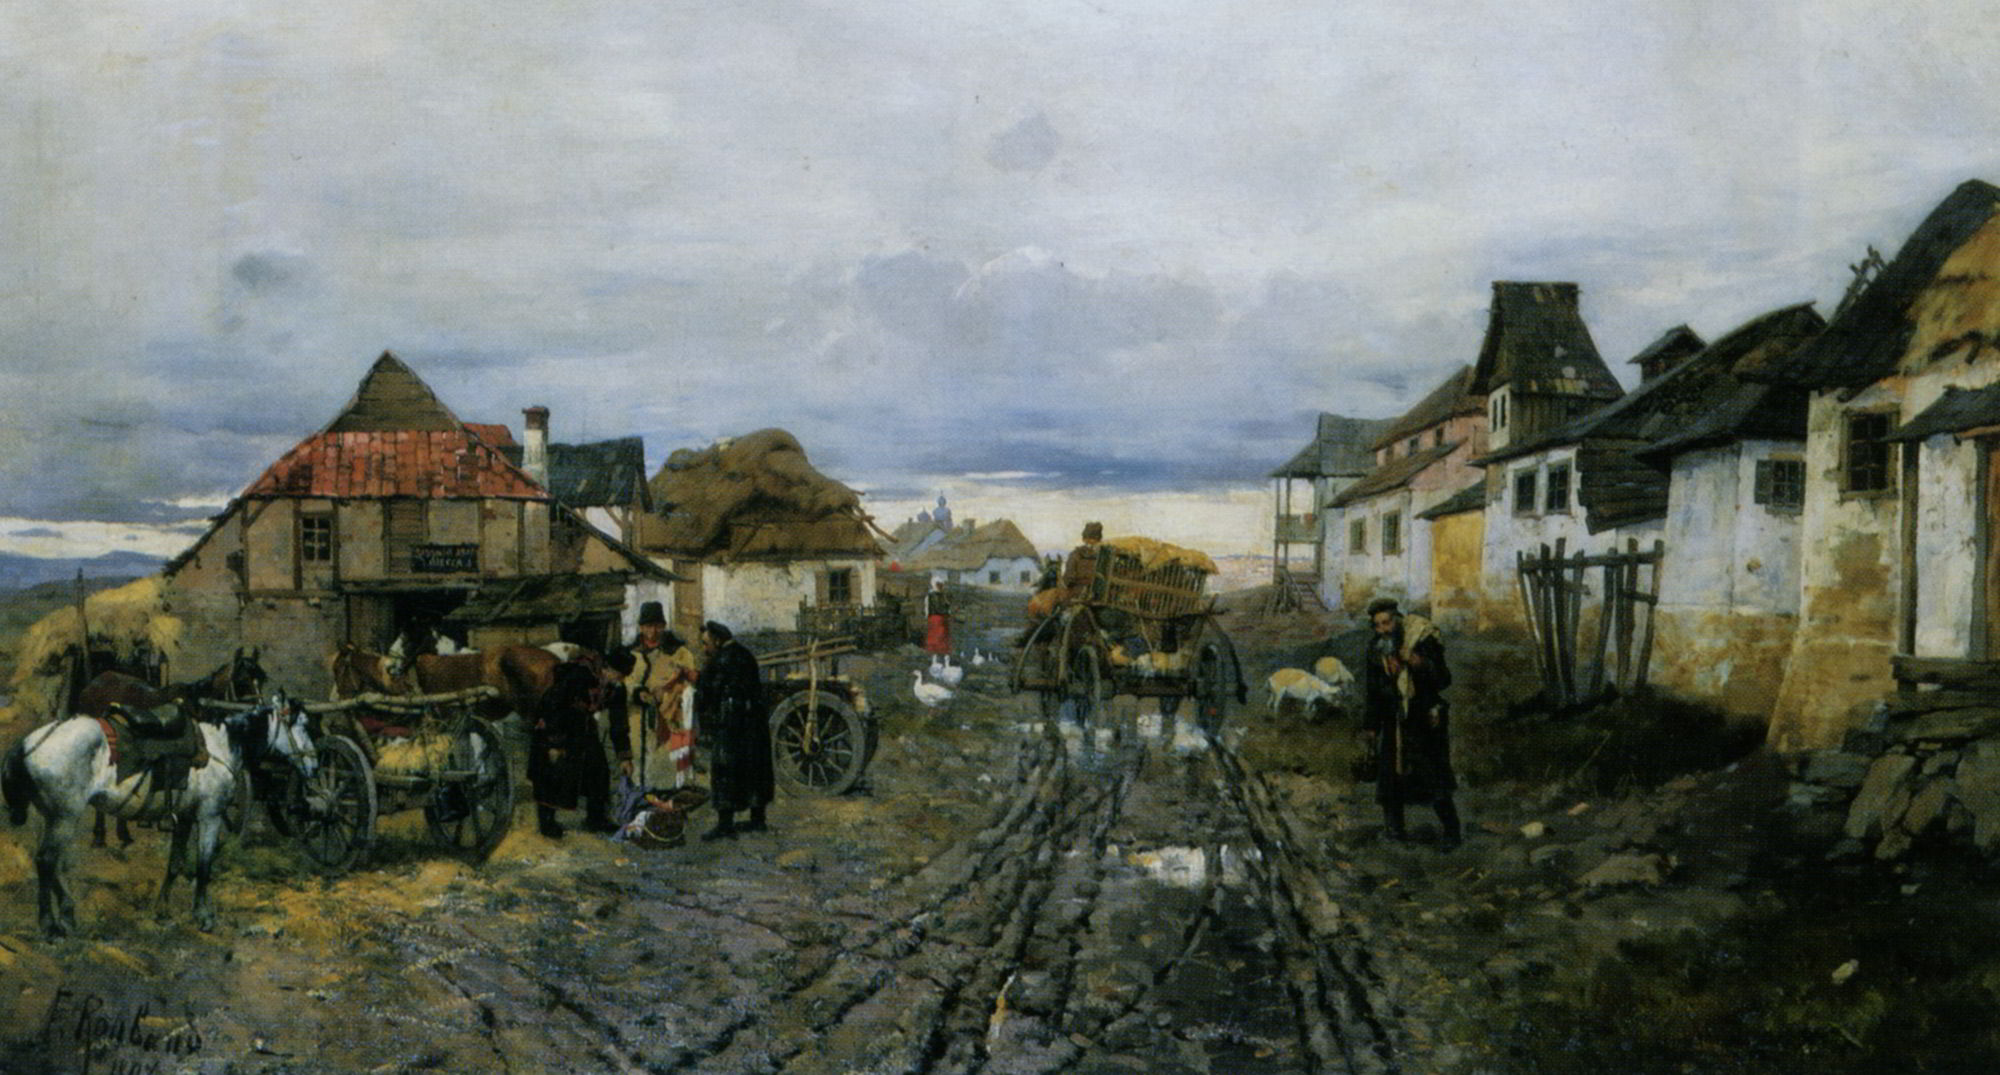 Village Traders by Franz Roubaud.